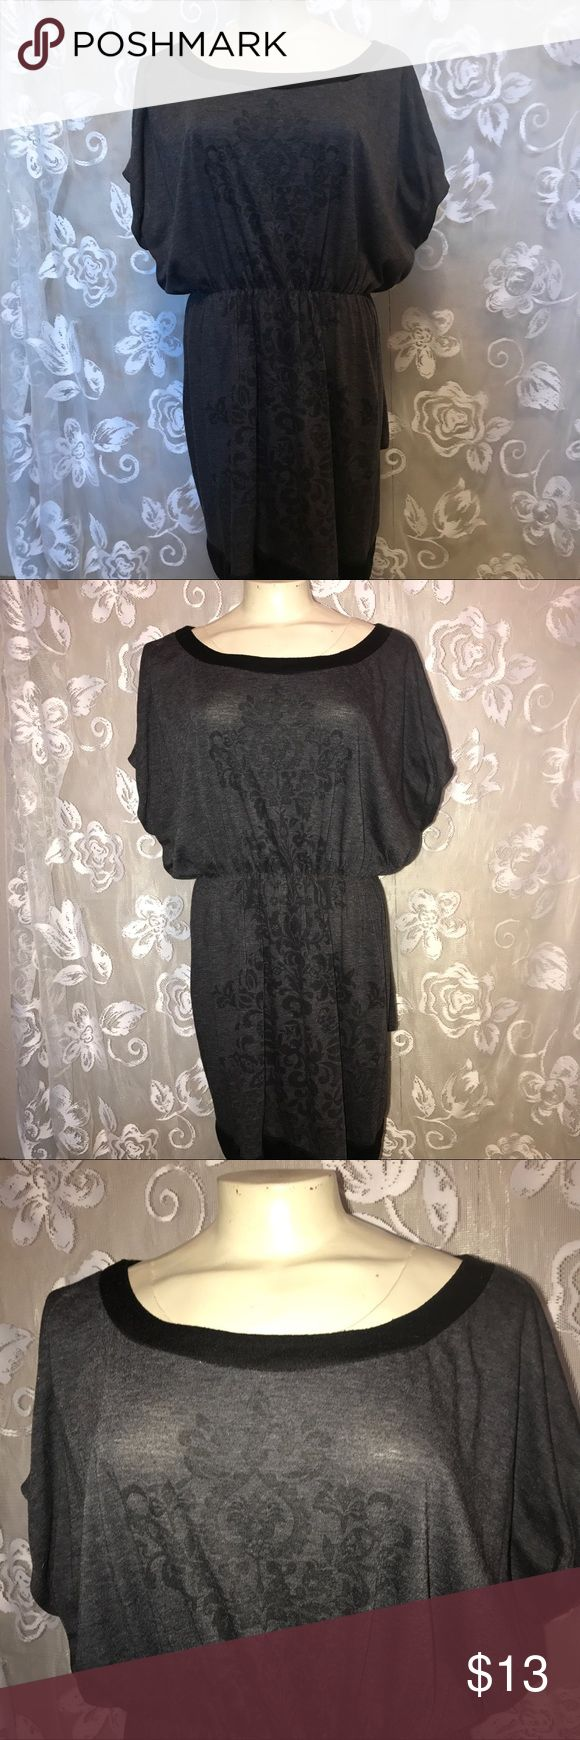 Dark Gray Batwing Dolman T Shirt Dress Plus Size Cute dark gray dormant that wing dress plus size 1X.   ~ Bundle up & save on shipping! Check out my other listings! ~ I am open to reasonable offers. ~I do my best to describe each item thoroughly. ~I ship same day or next day. ~ I do not hold items. ~Not responsible for incorrect sizing. I go by what the tag says its up to the buyer to know their size. delirious Dresses Midi